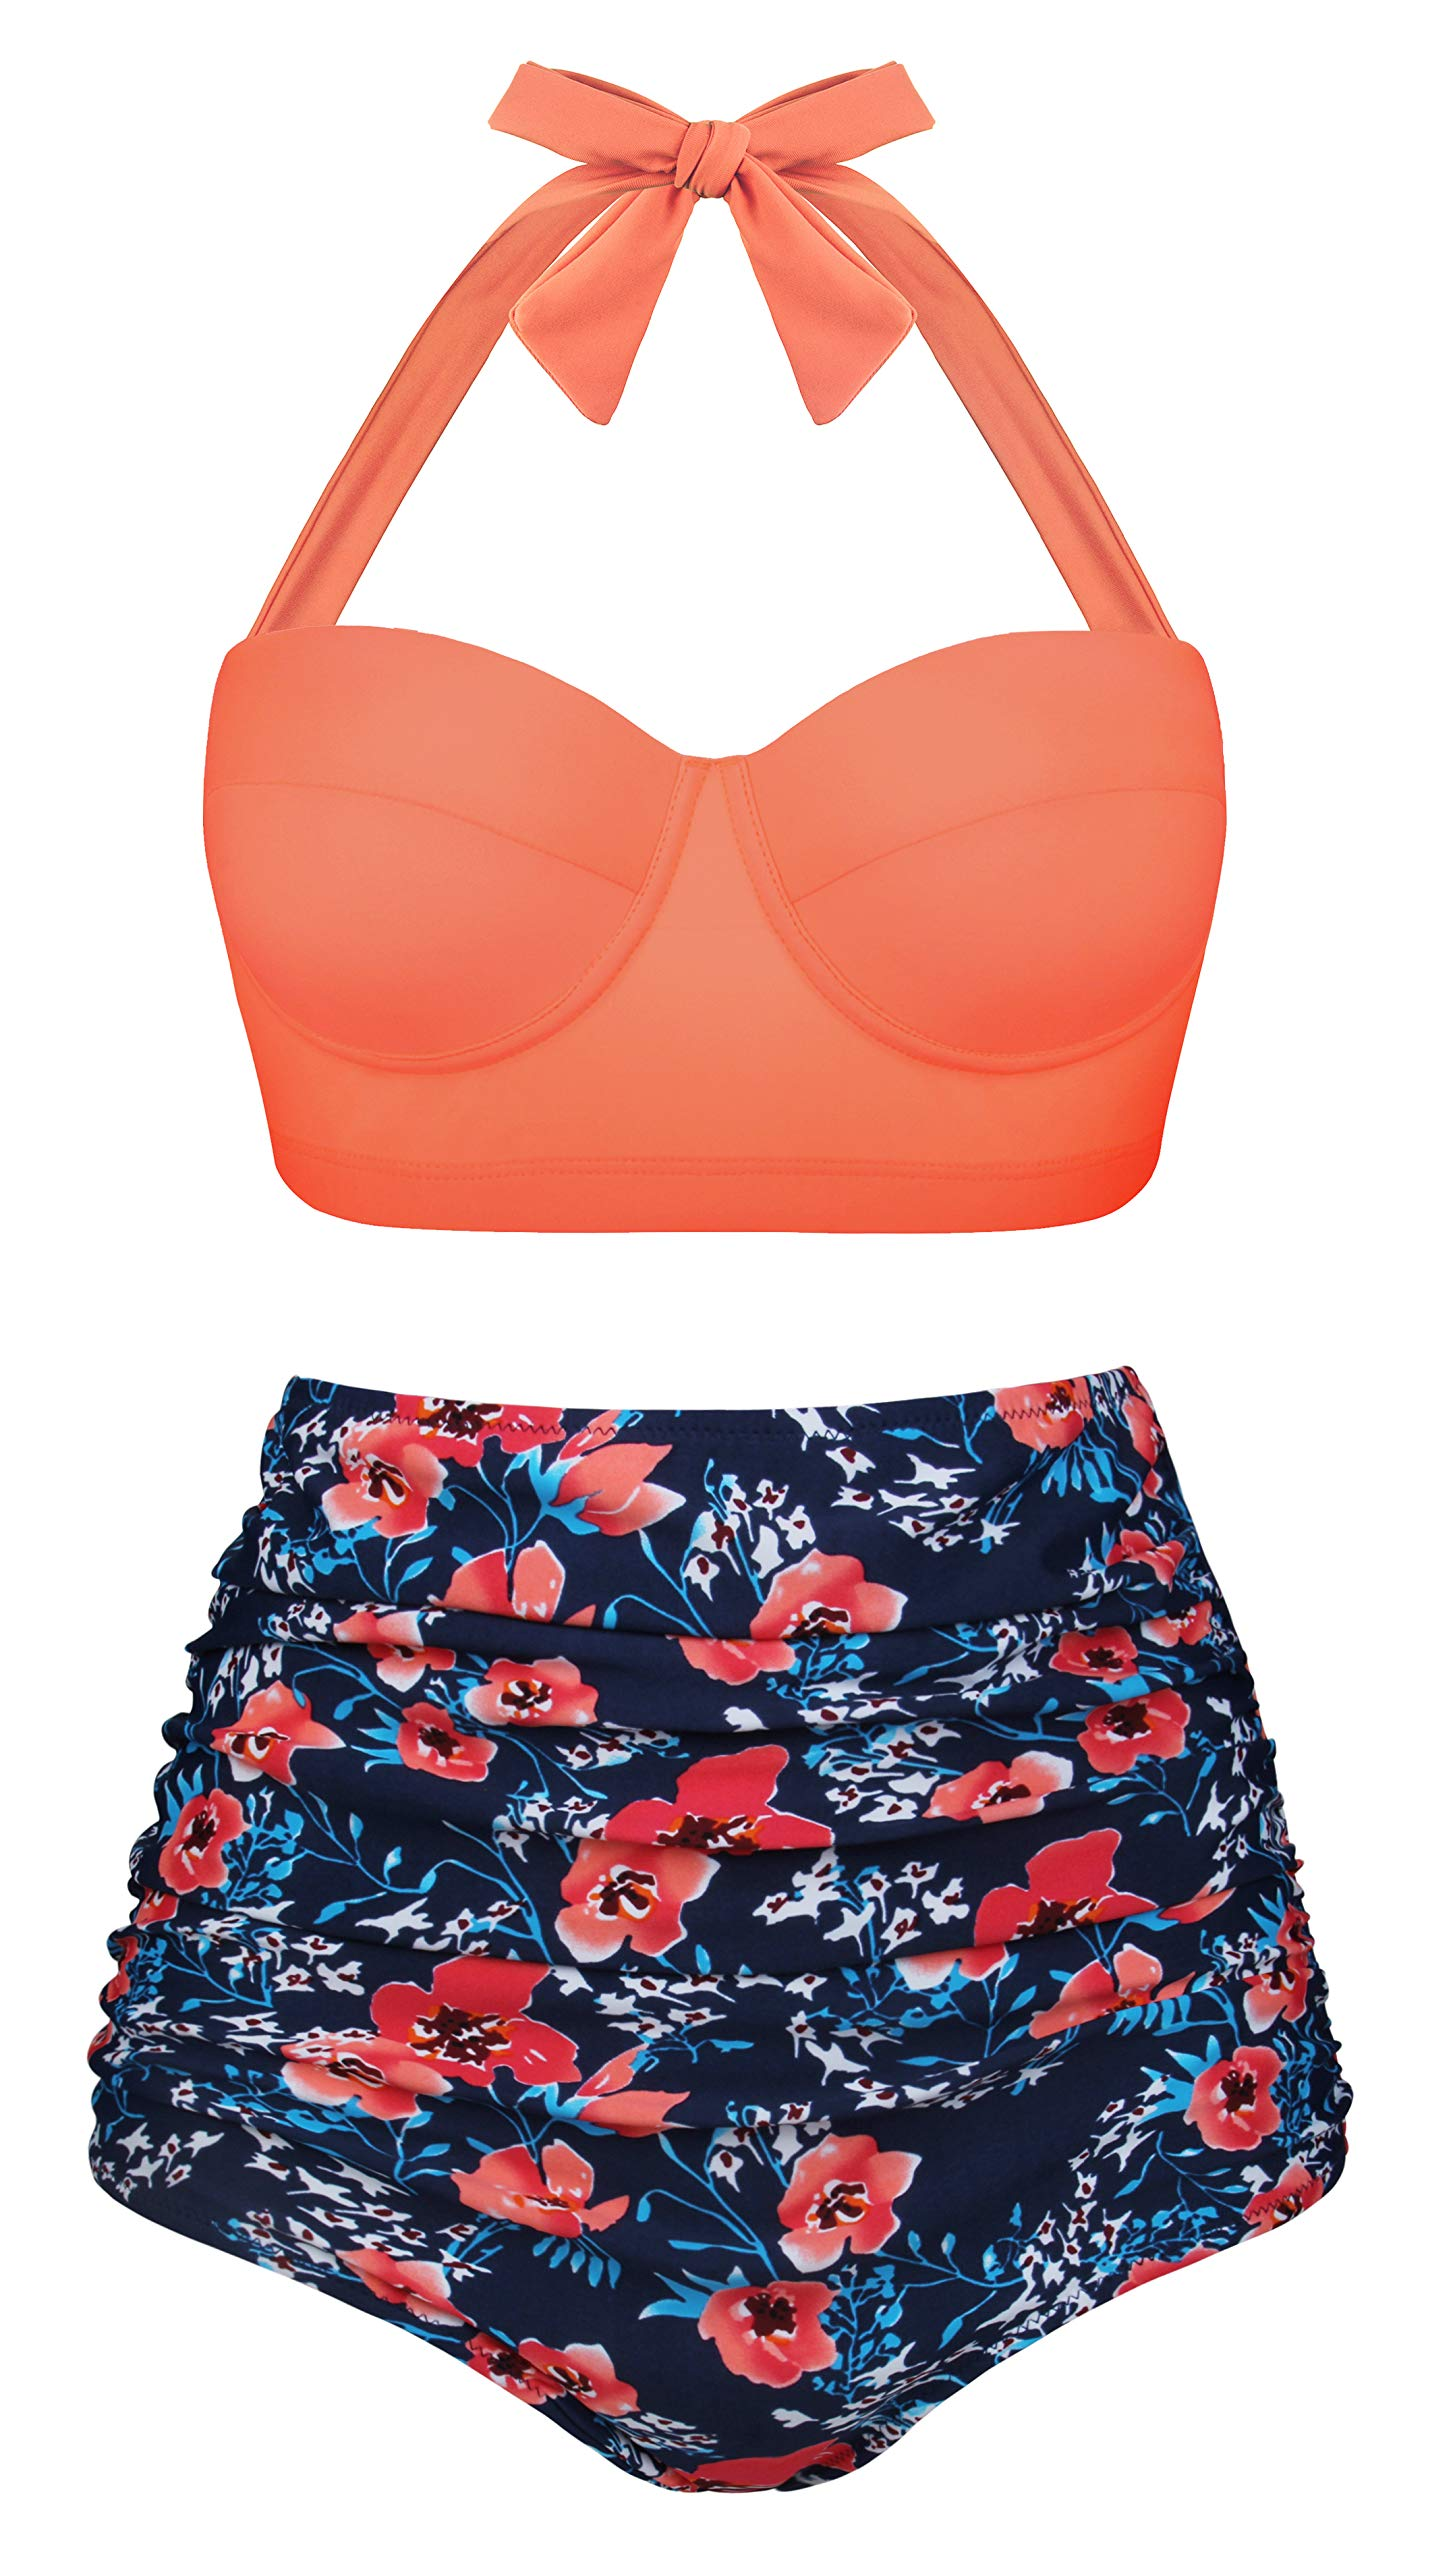 Aixy Women Vintage Two Piece Swimsuits High Waisted Bathing Suits with Underwired Top